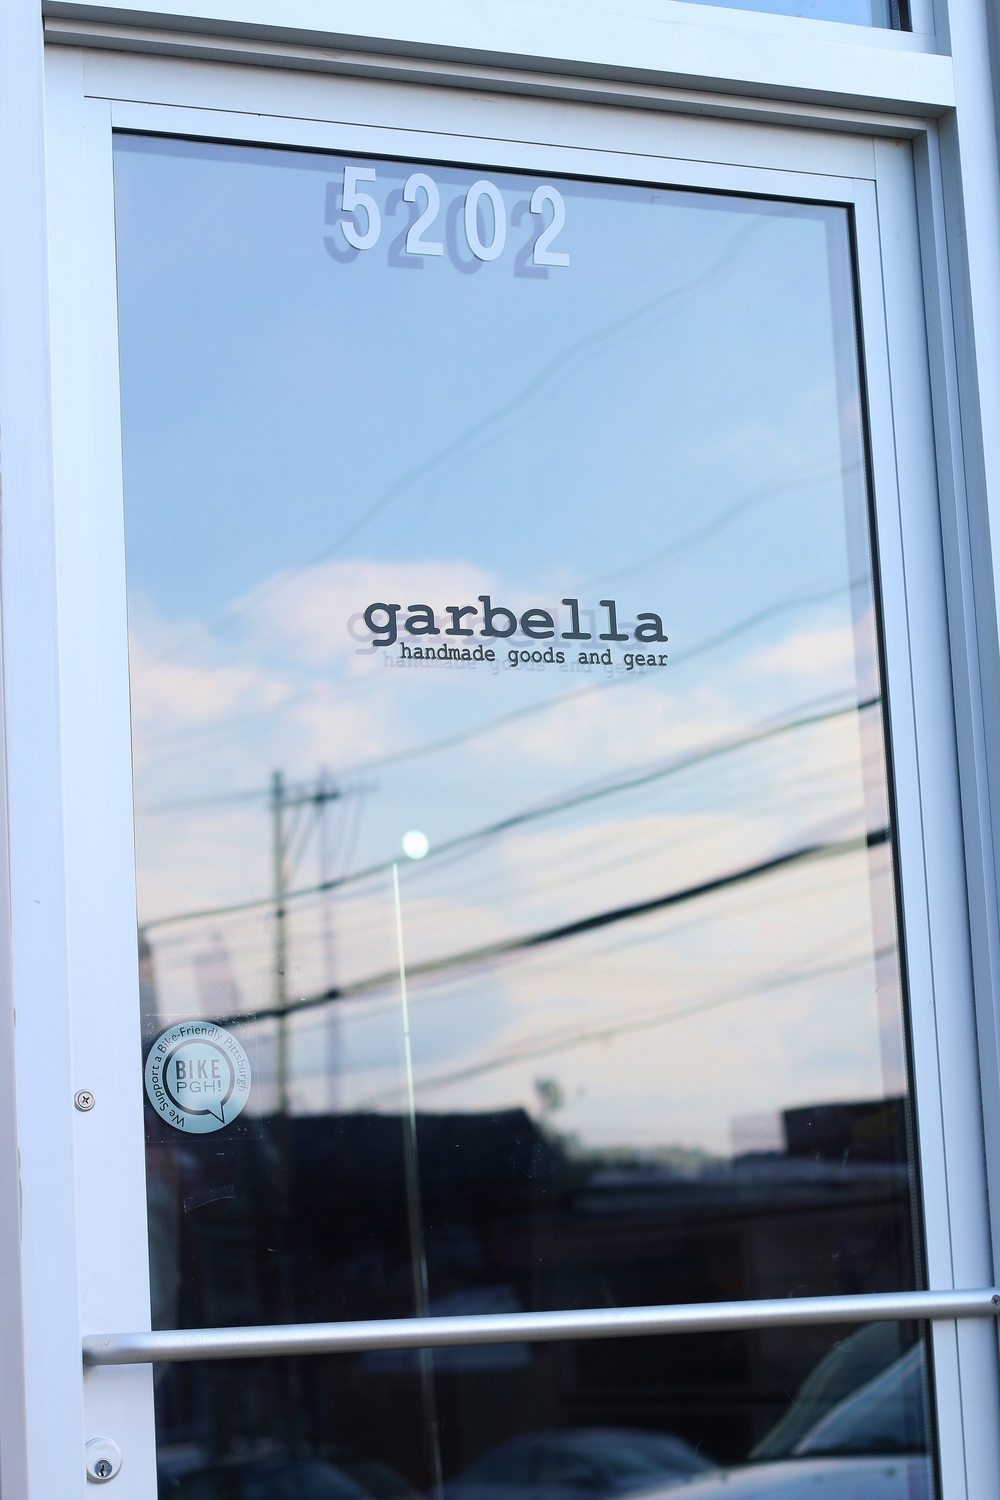 garbella-studio door.jpg